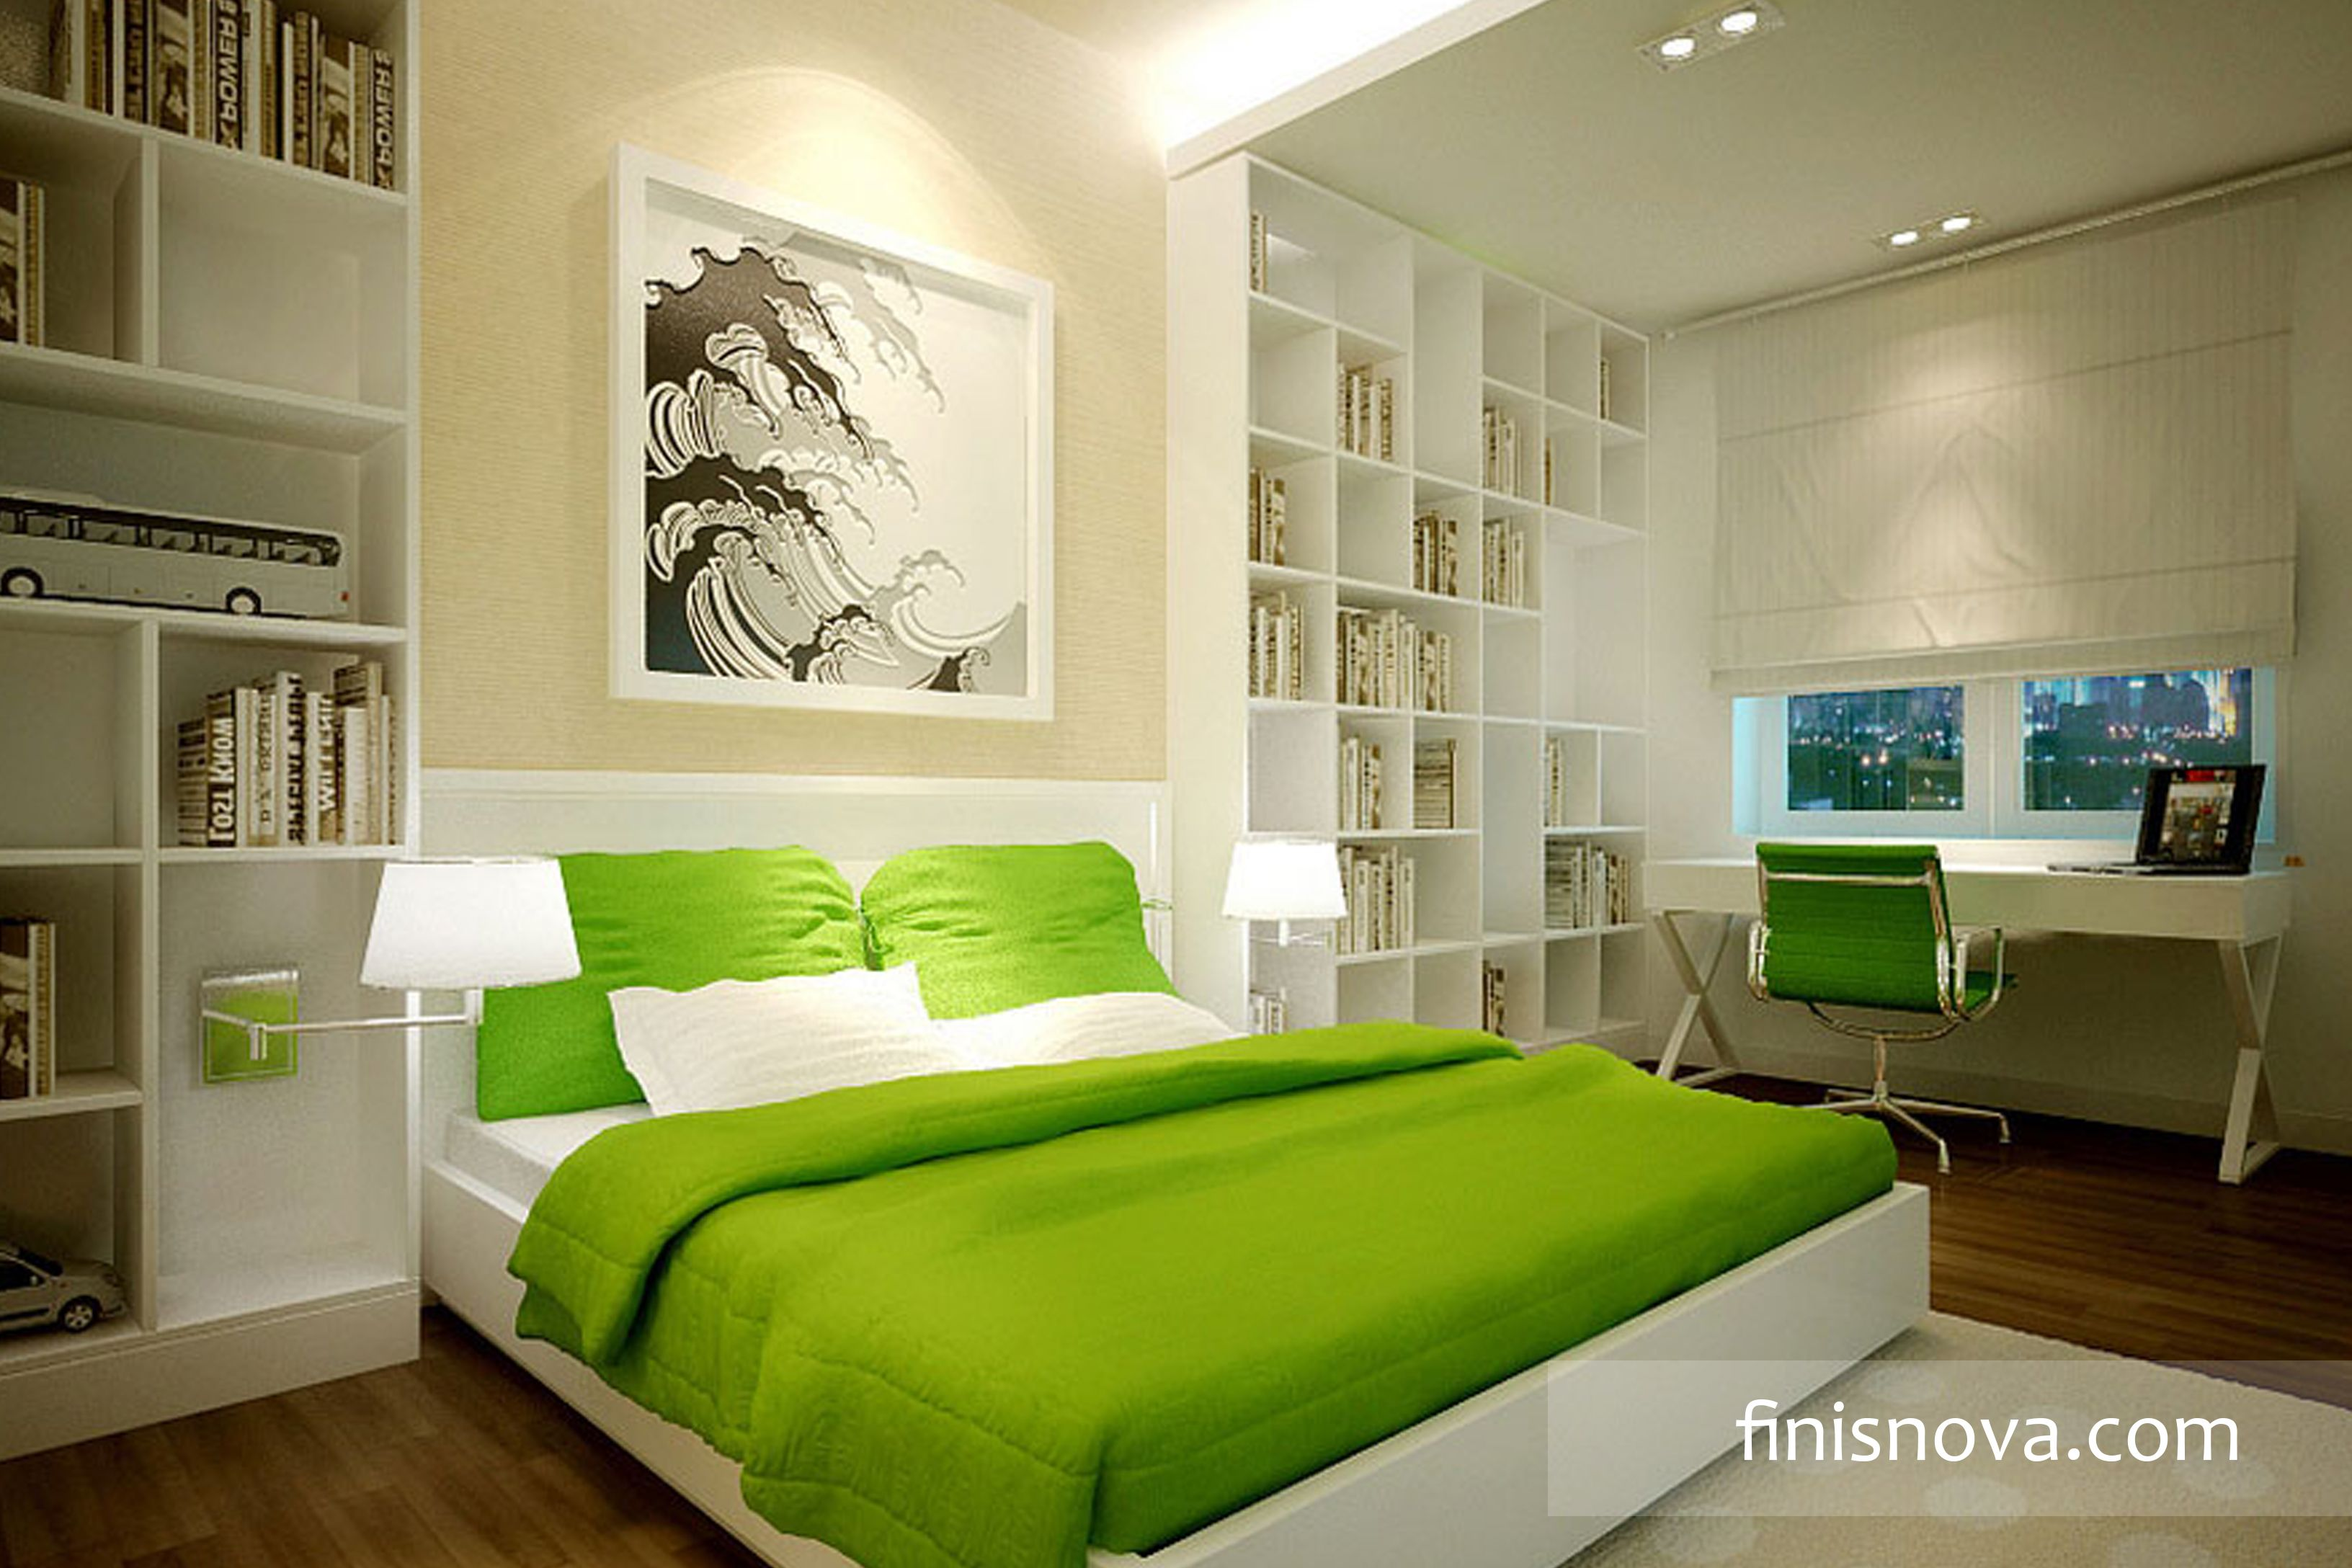 green bedroom decor Decorating Your Bedroom with